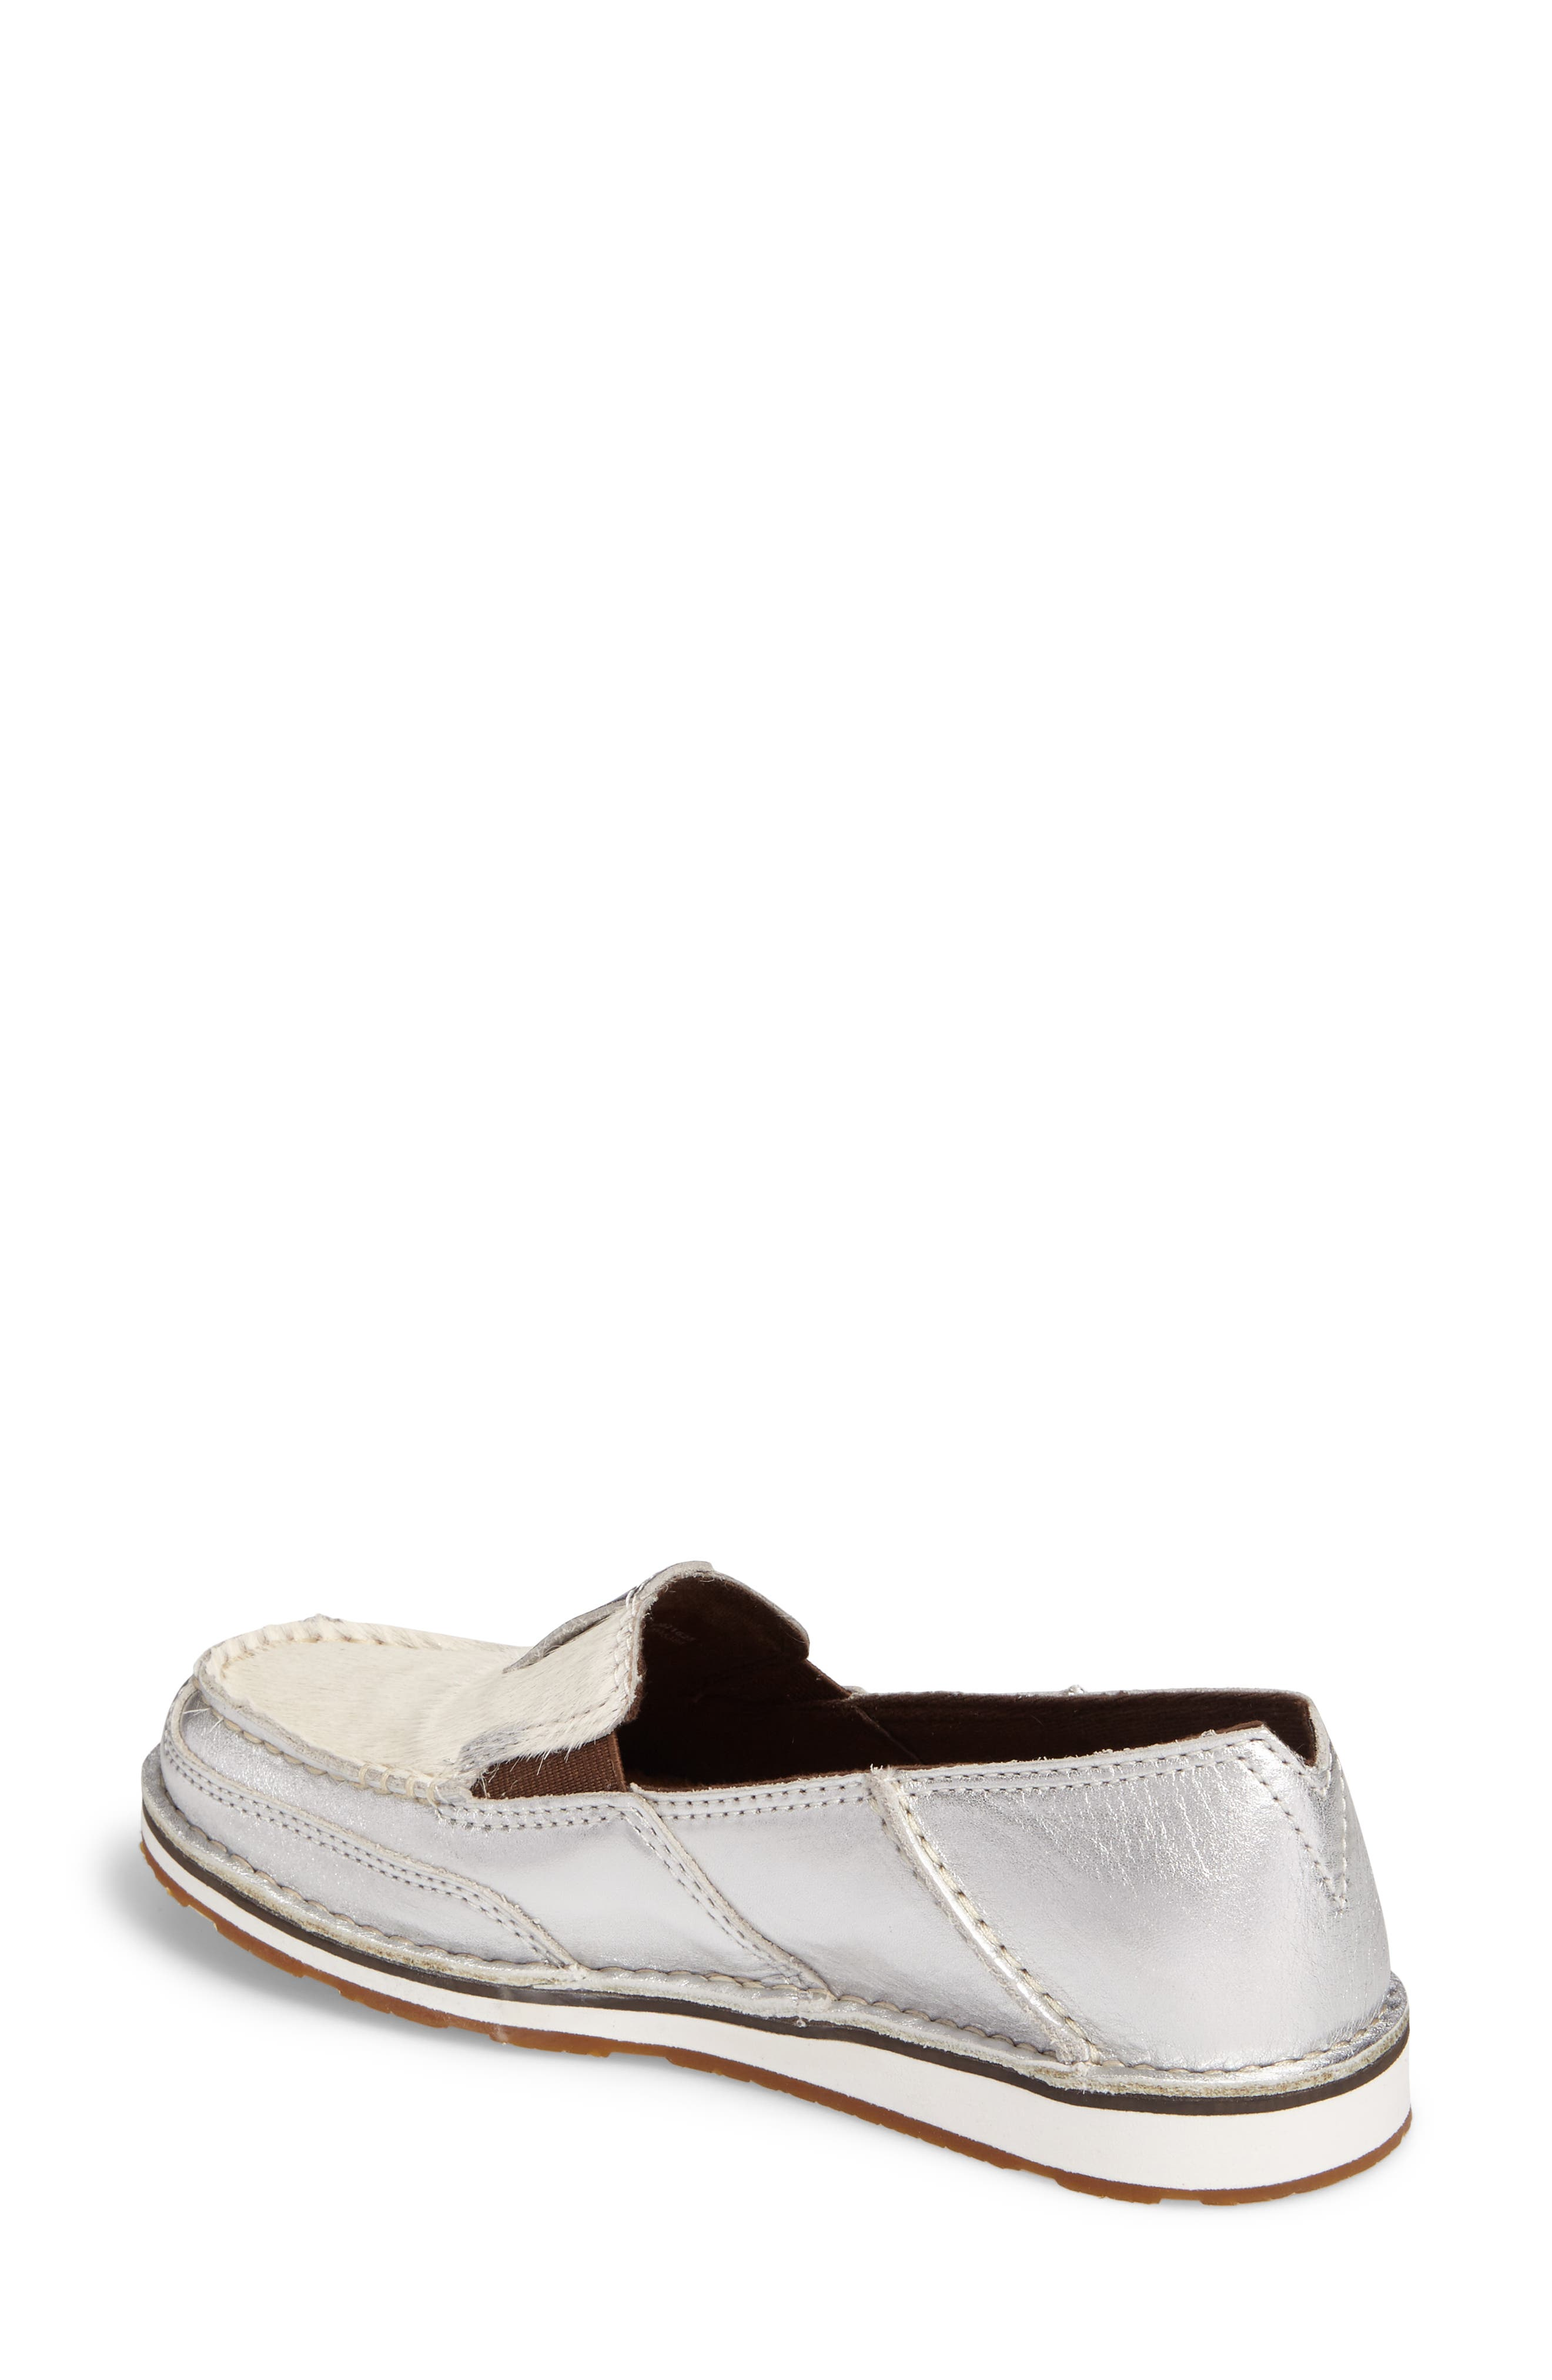 Alternate Image 2  - Ariat Cruiser Genuine Calf Hair Slip-On Loafer (Women)